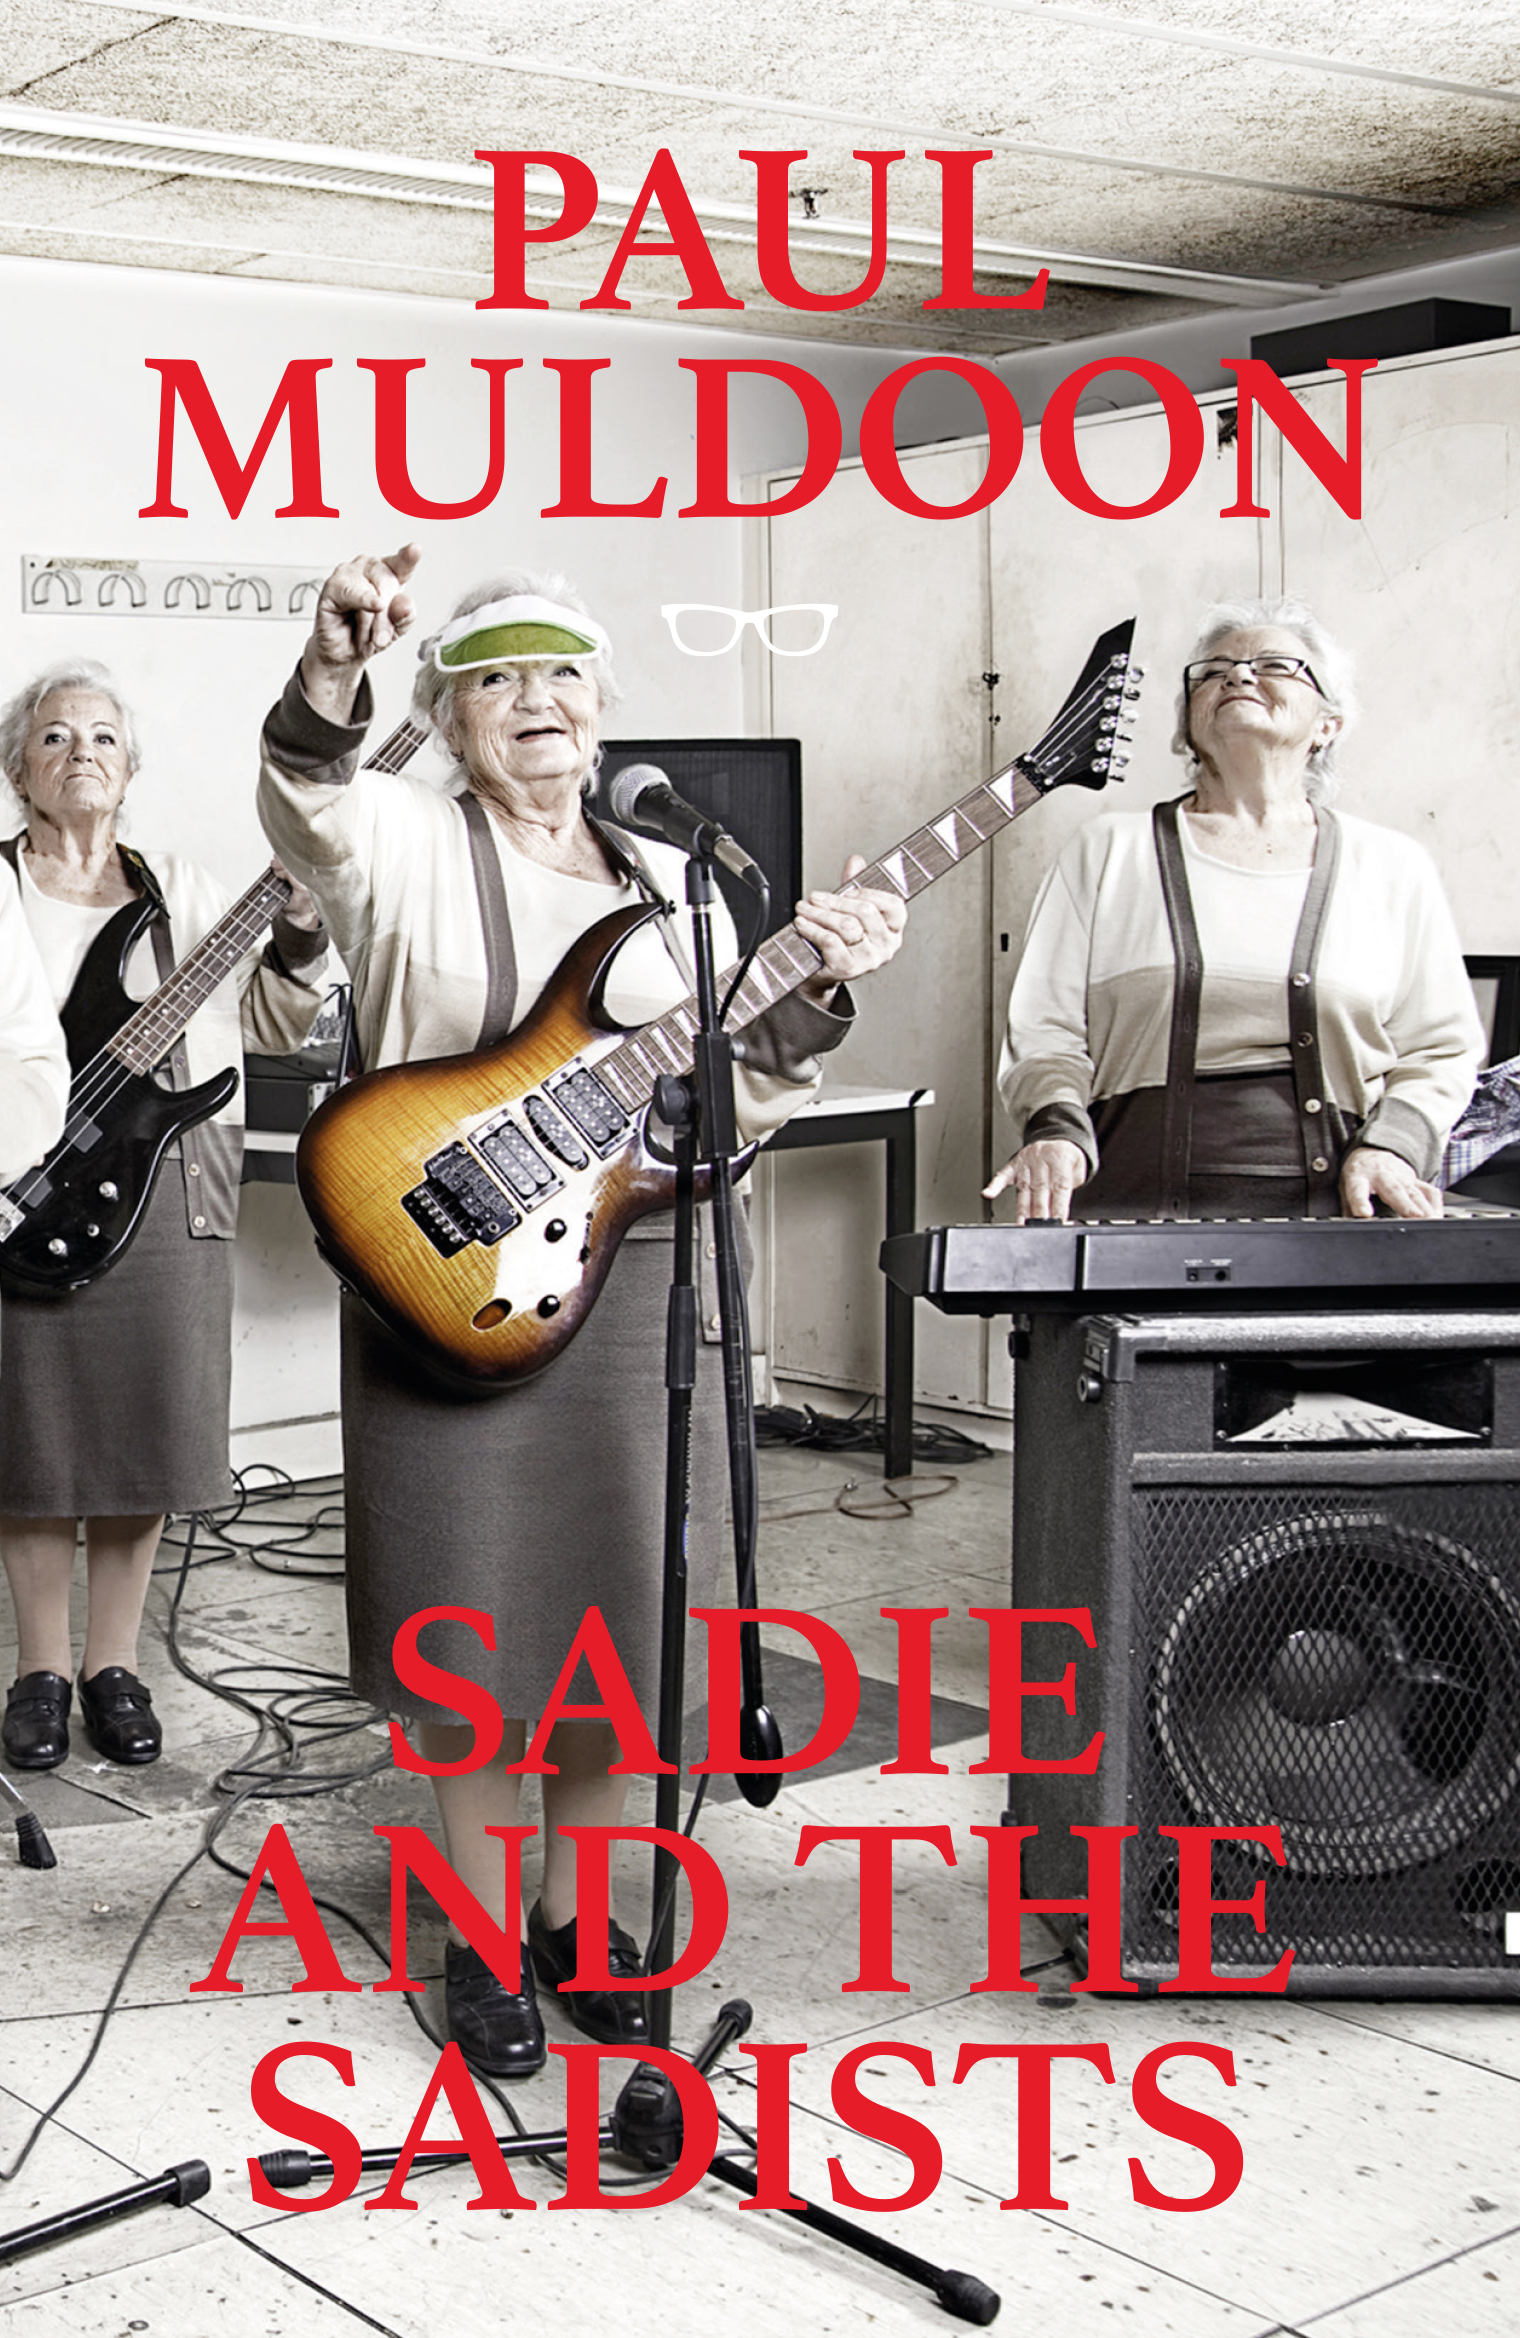 Cover muldoon front